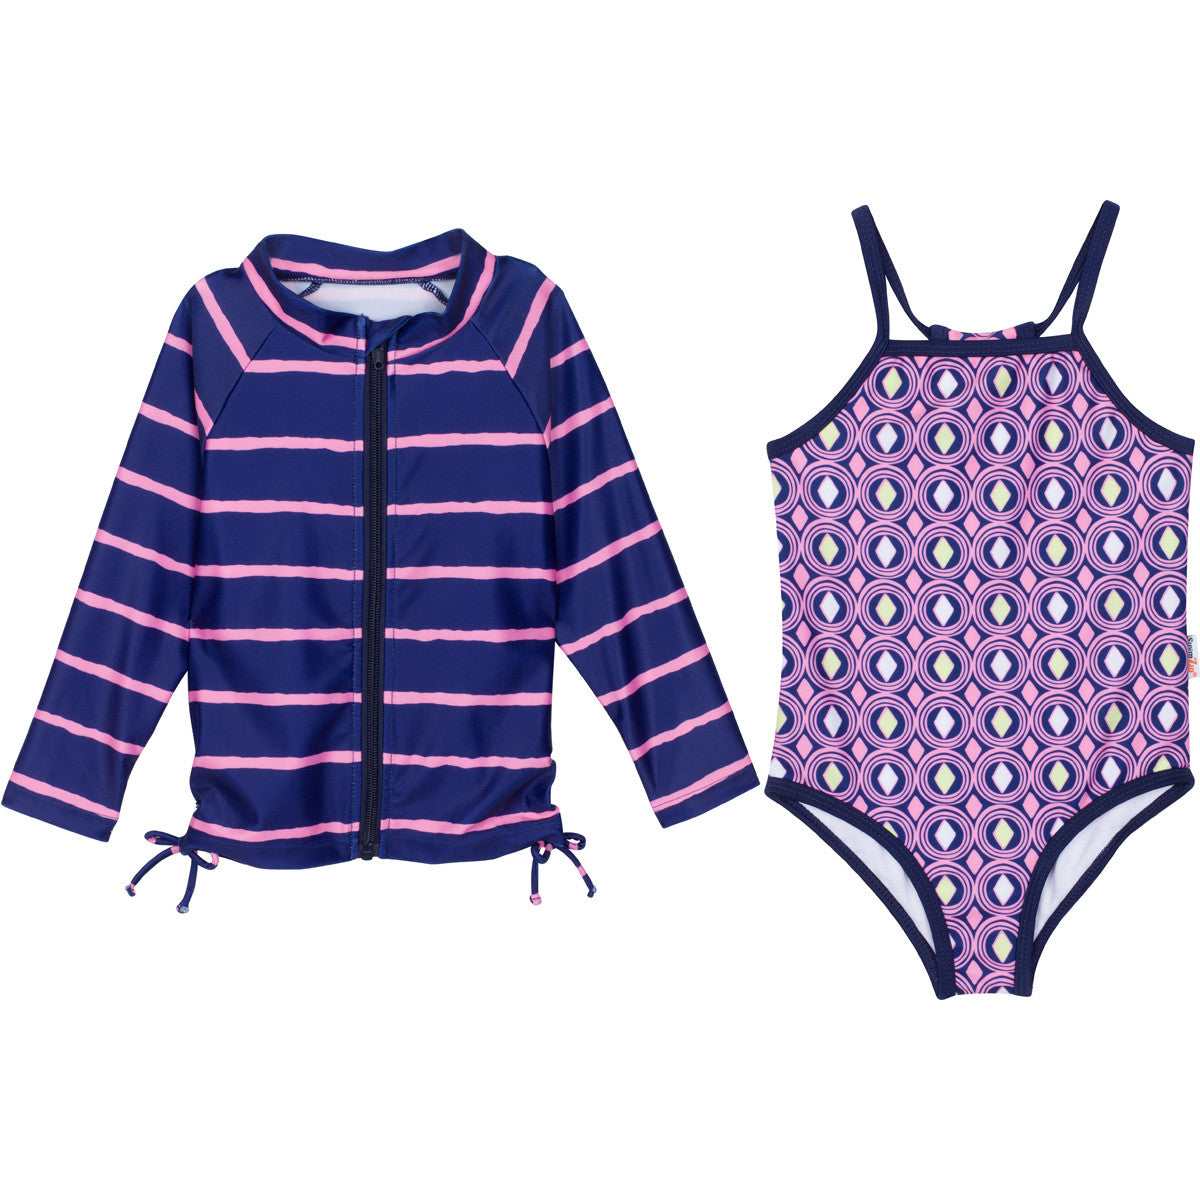 5357ccd8c3d26 Baby Girl One-Piece Swimsuit and Long Sleeve Rash Guard Set (2 Piece) -